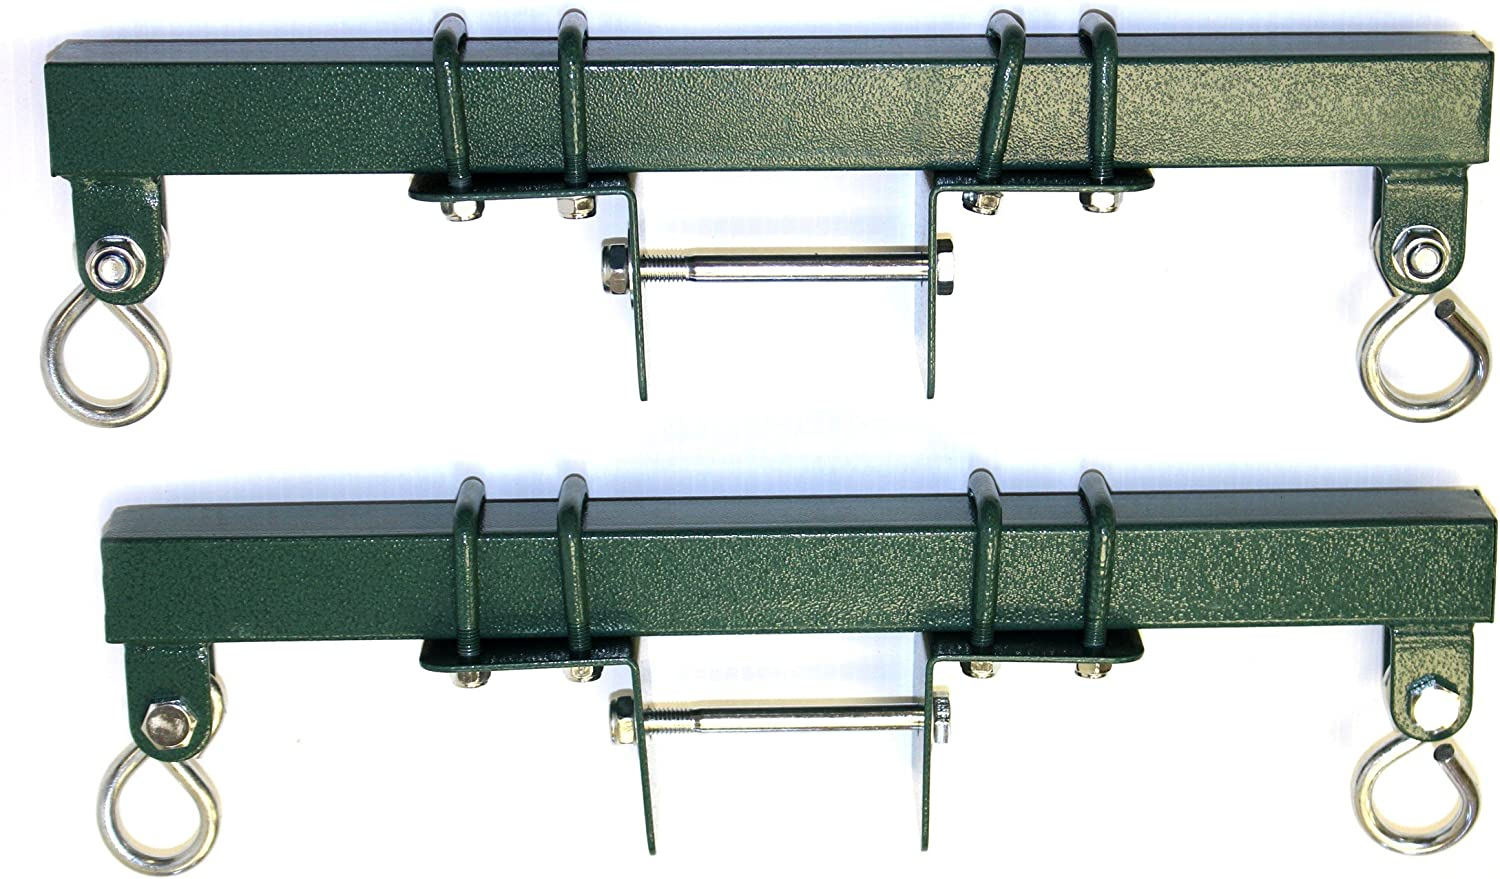 Eastern Jungle Gym Heavy Duty Brackets (Pair) for Backyard Swing Set Horse Glider Seat - Adjustable to Mount to Any Size Wooden Swing Beam